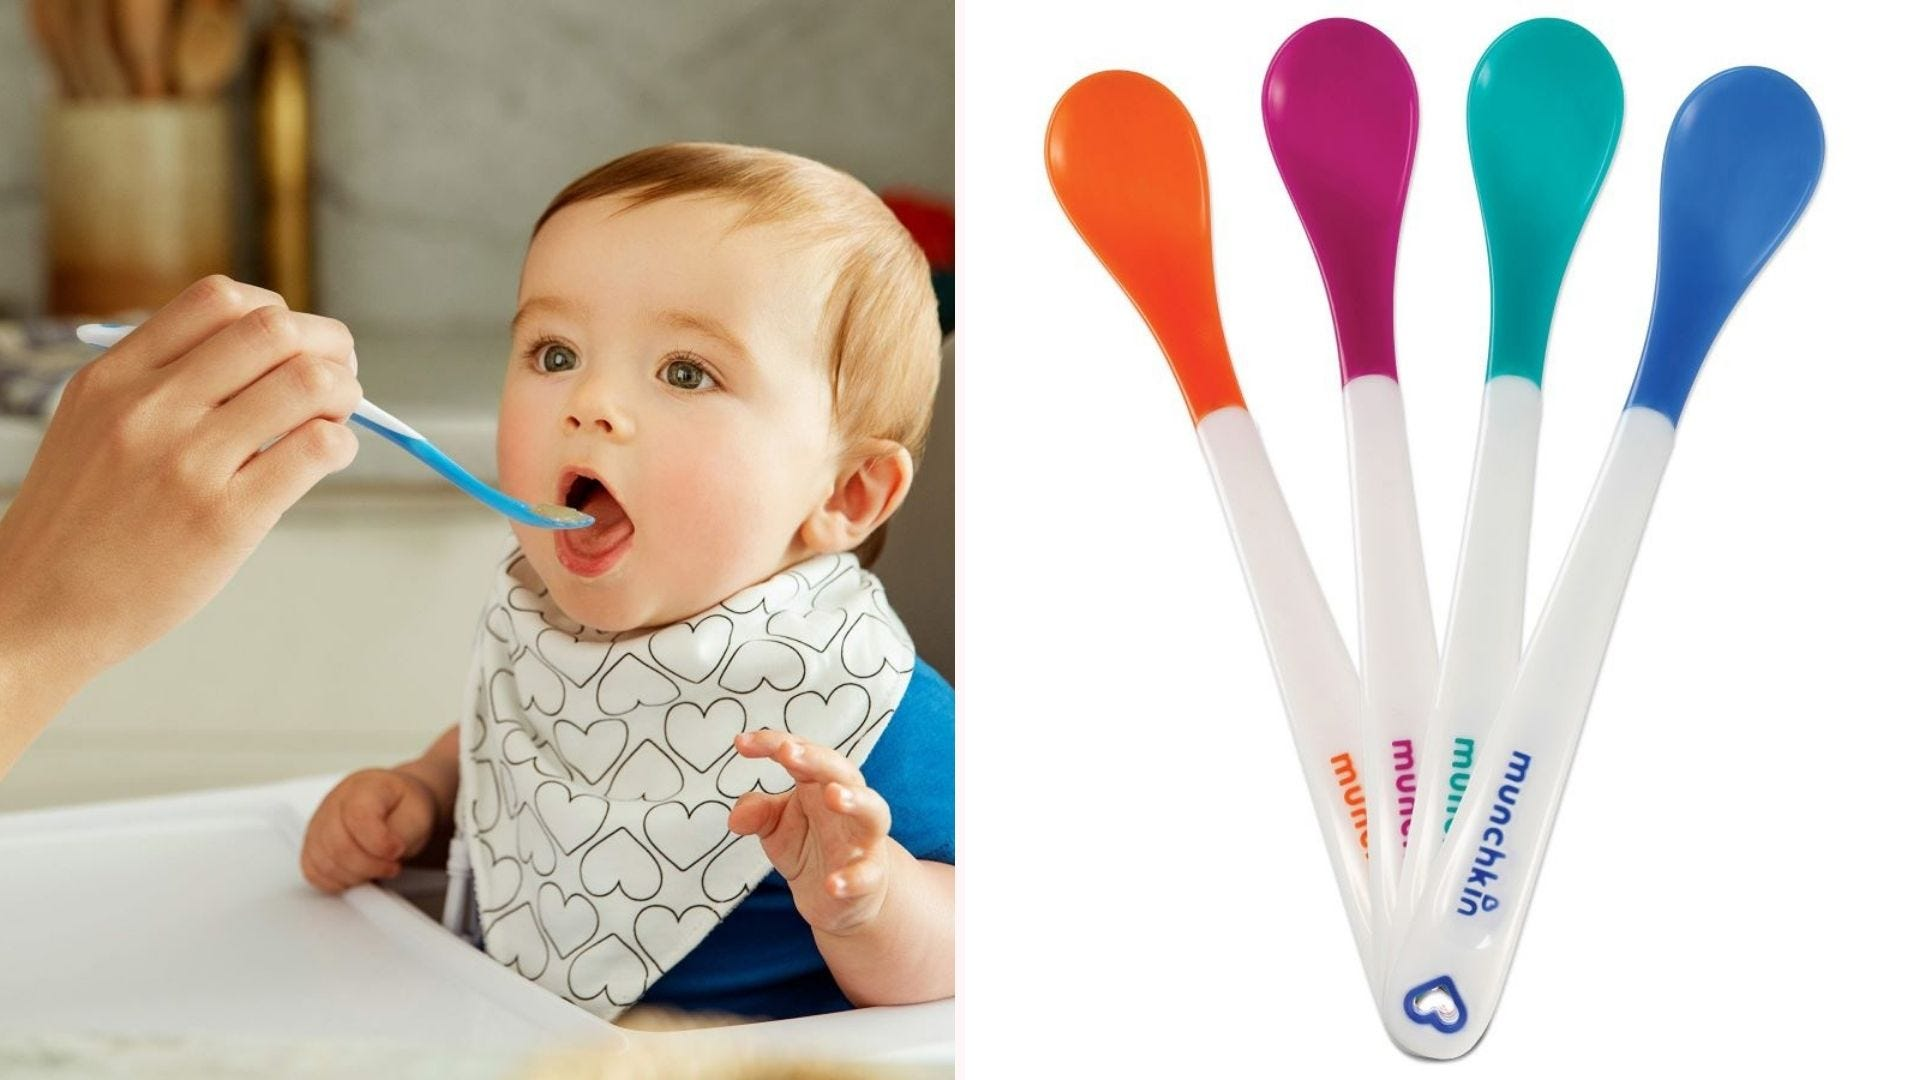 Someone feeding a baby with a blue munchkin spoon, and an image of all four colors.